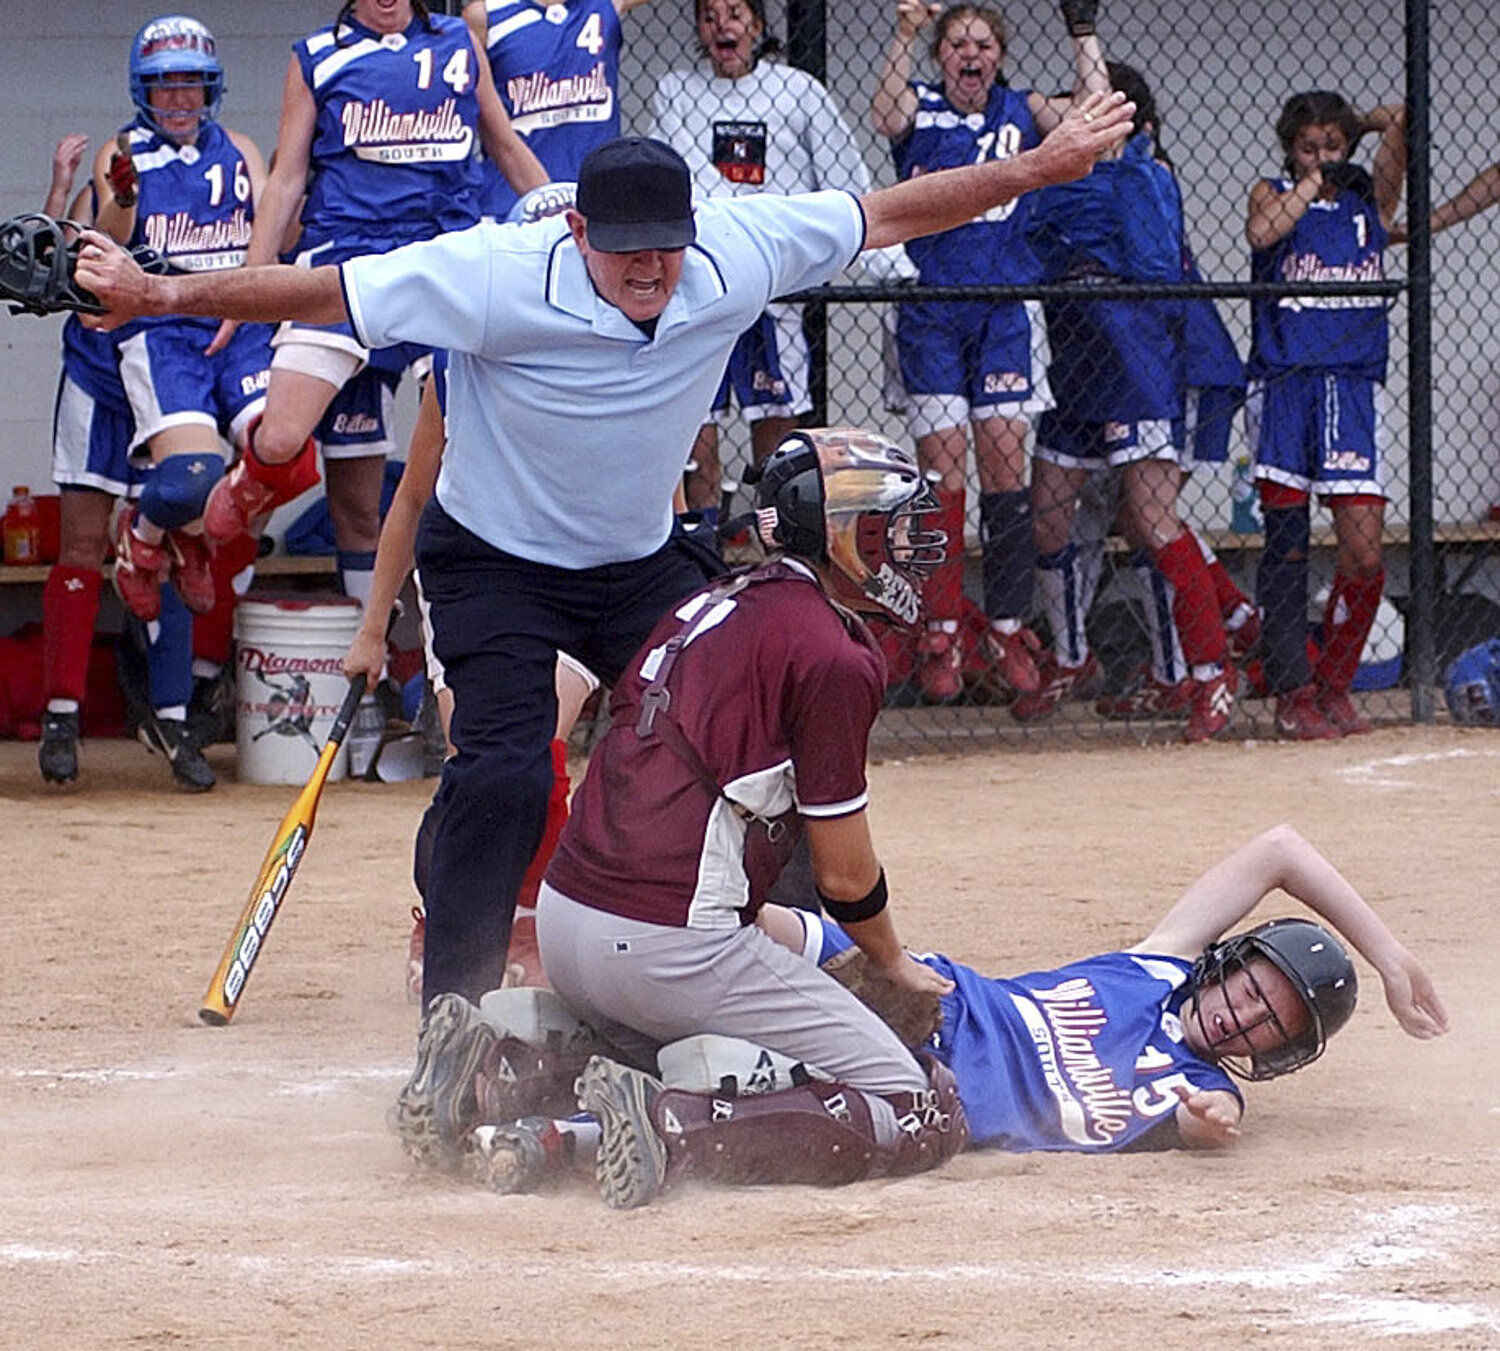 South's #15 Anna Braunscheidel scores the only and winning run against Newark on a base hit by #24 Ashley Coomber as Williamsville South girls softball defeats Newark in the Far West Regionals at Nan Harvey Field on University at Buffalo Campus.